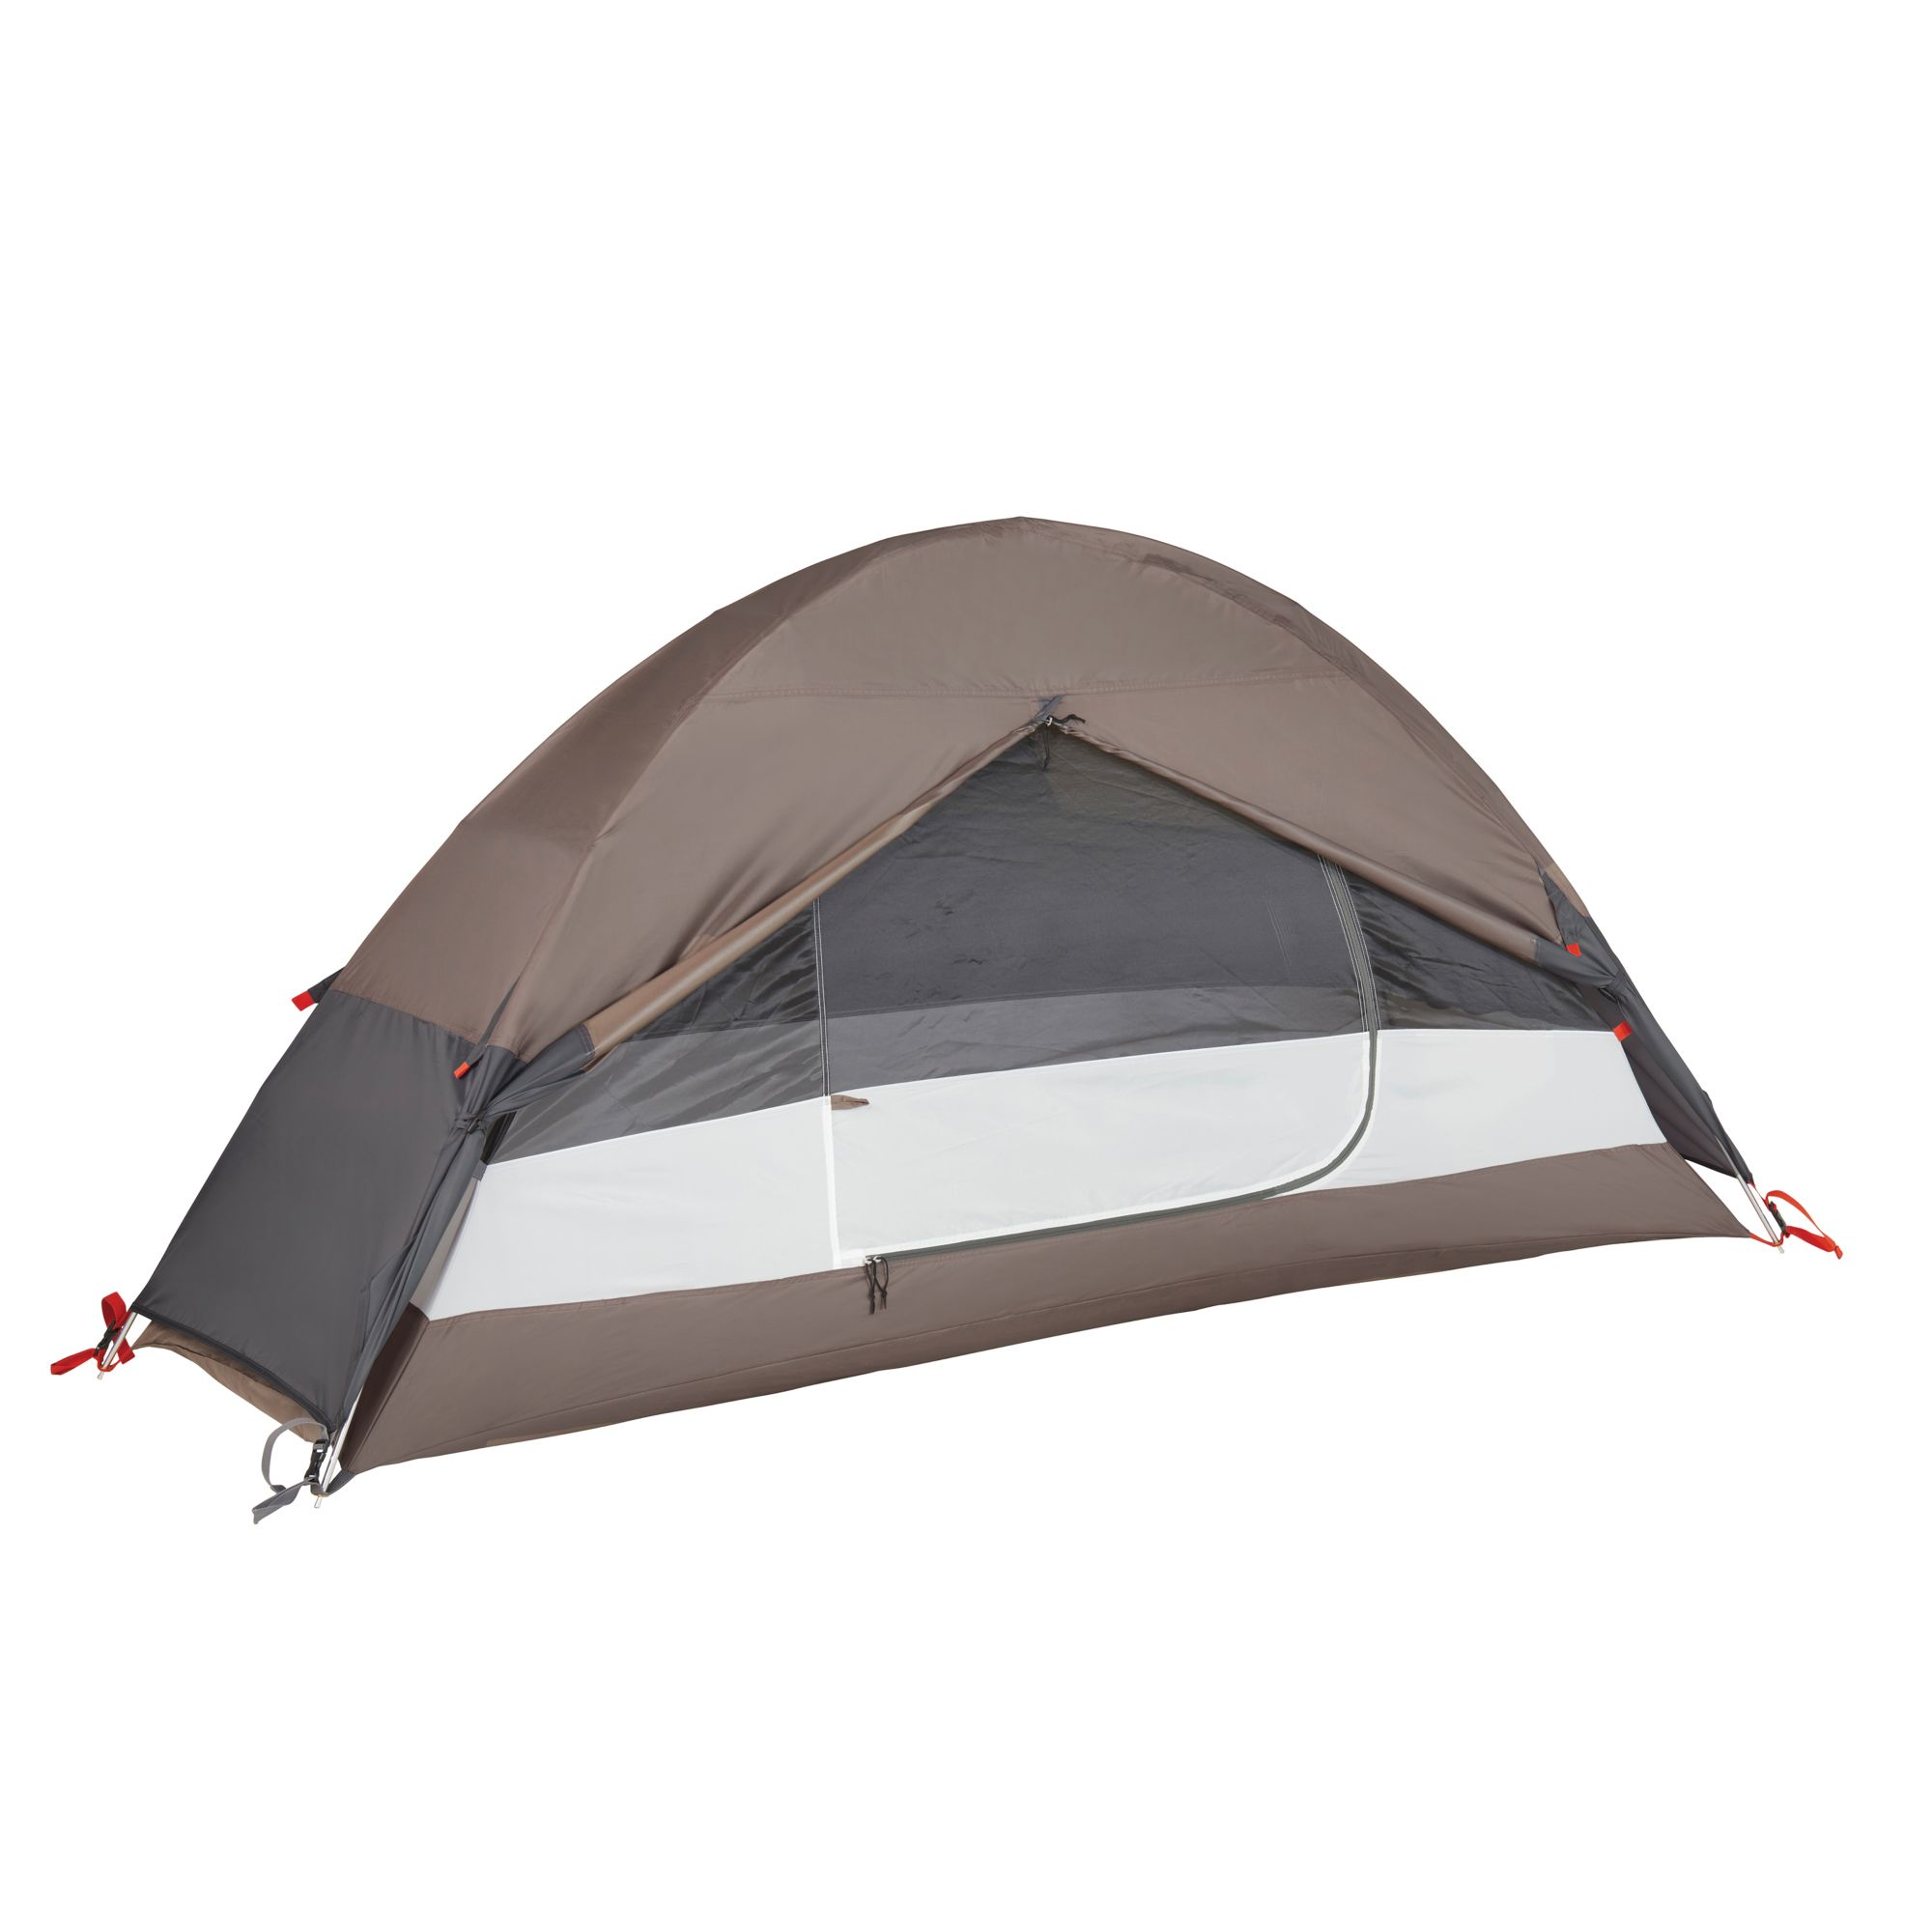 Kelty Circuit 1 Person Tent  sc 1 st  DICKu0027S Sporting Goods & Kelty Circuit 1 Person Tent | DICKu0027S Sporting Goods